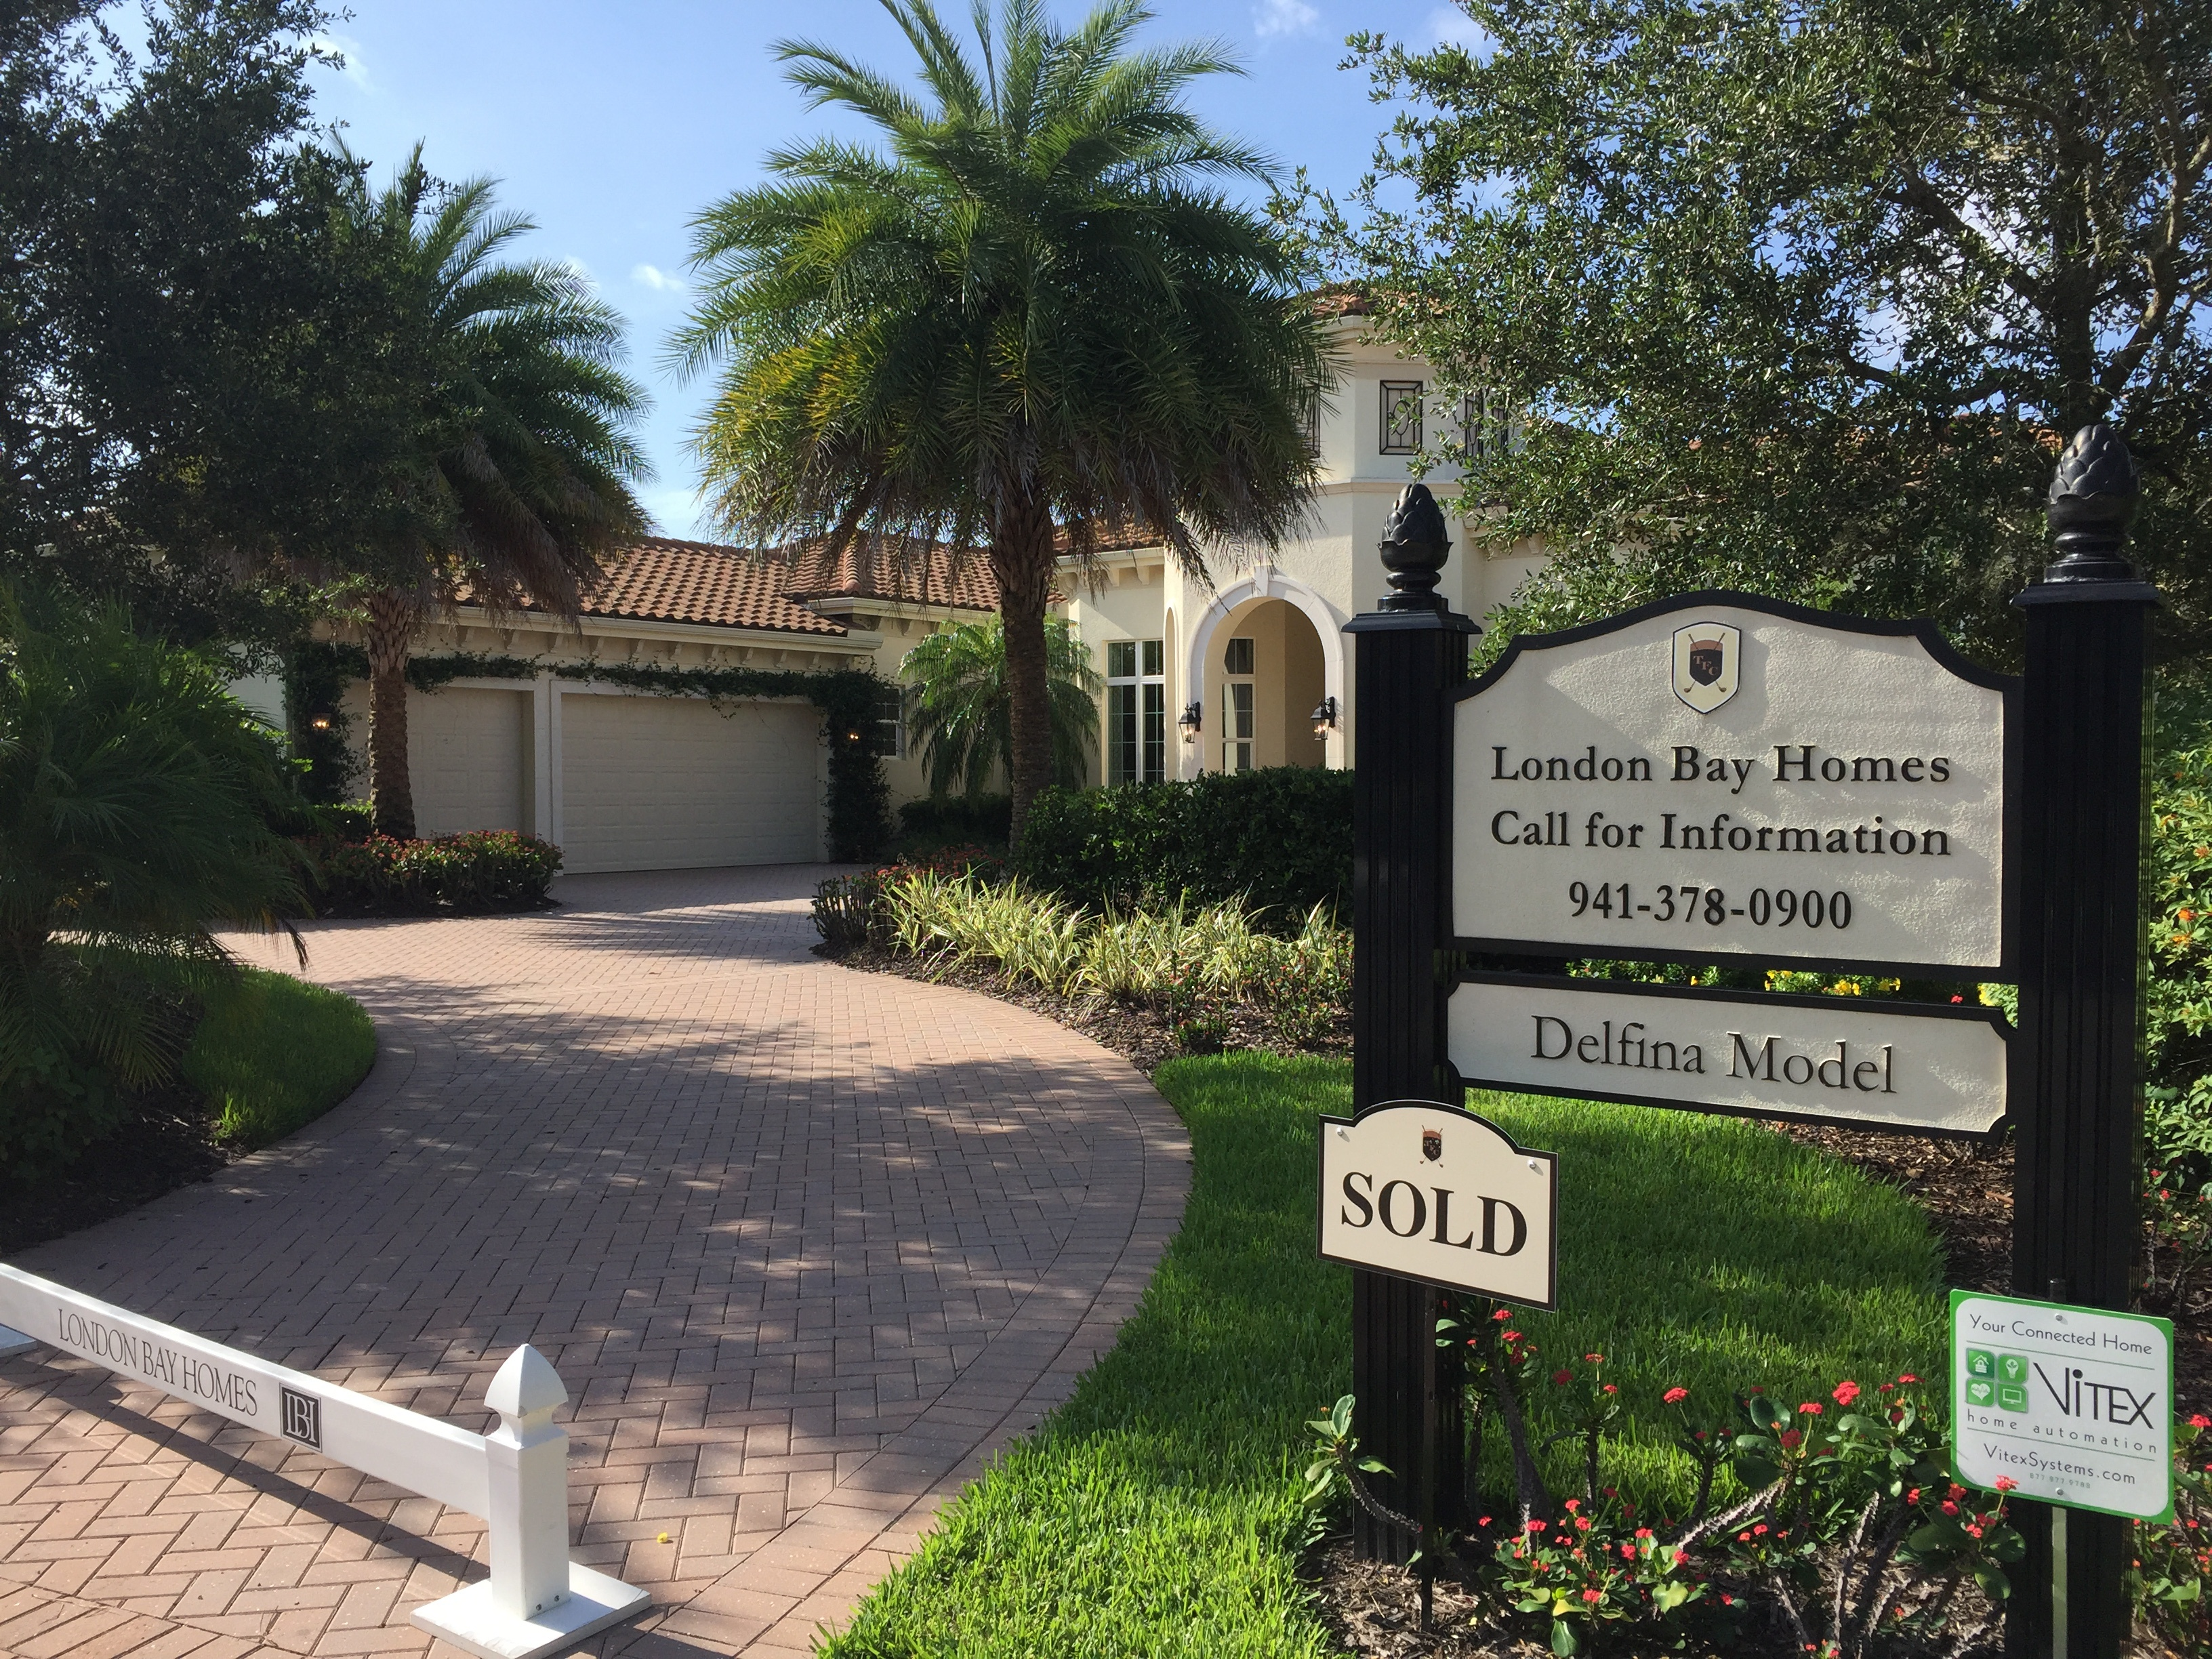 Sold - The Delfina Model by London Bay Homes